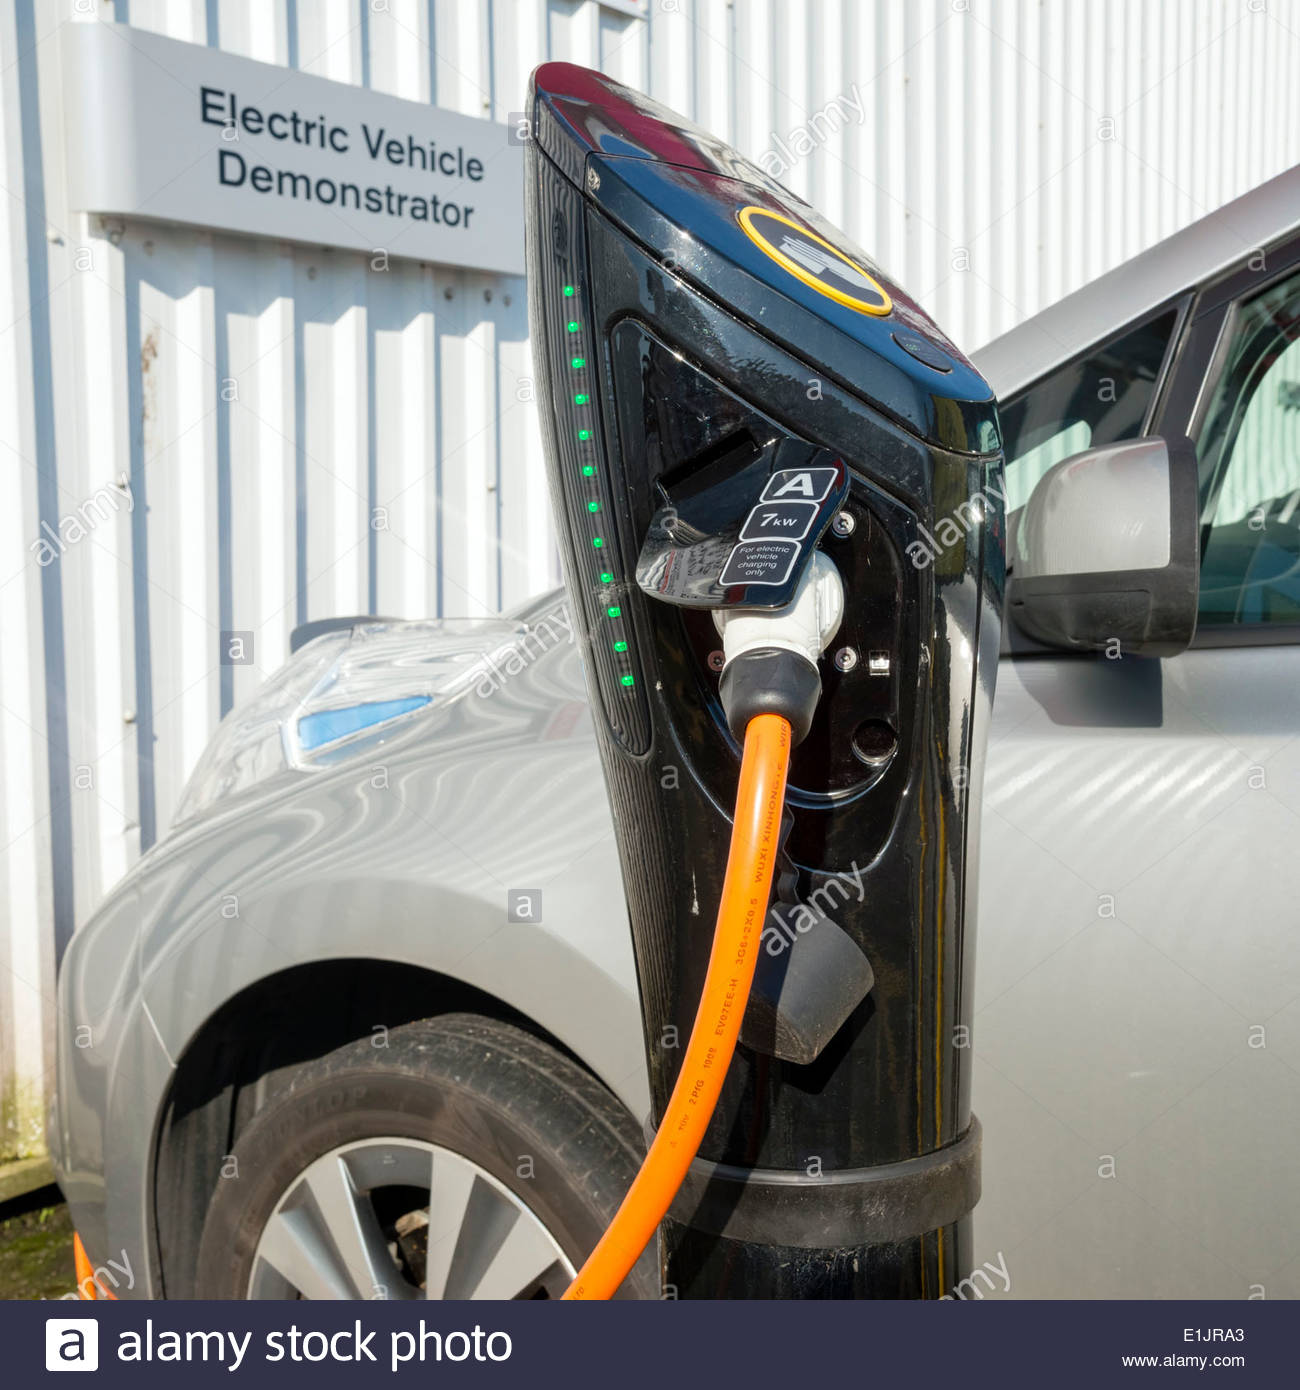 Electric car demonstrator on charge at a Nissan garage, UK - Stock Image